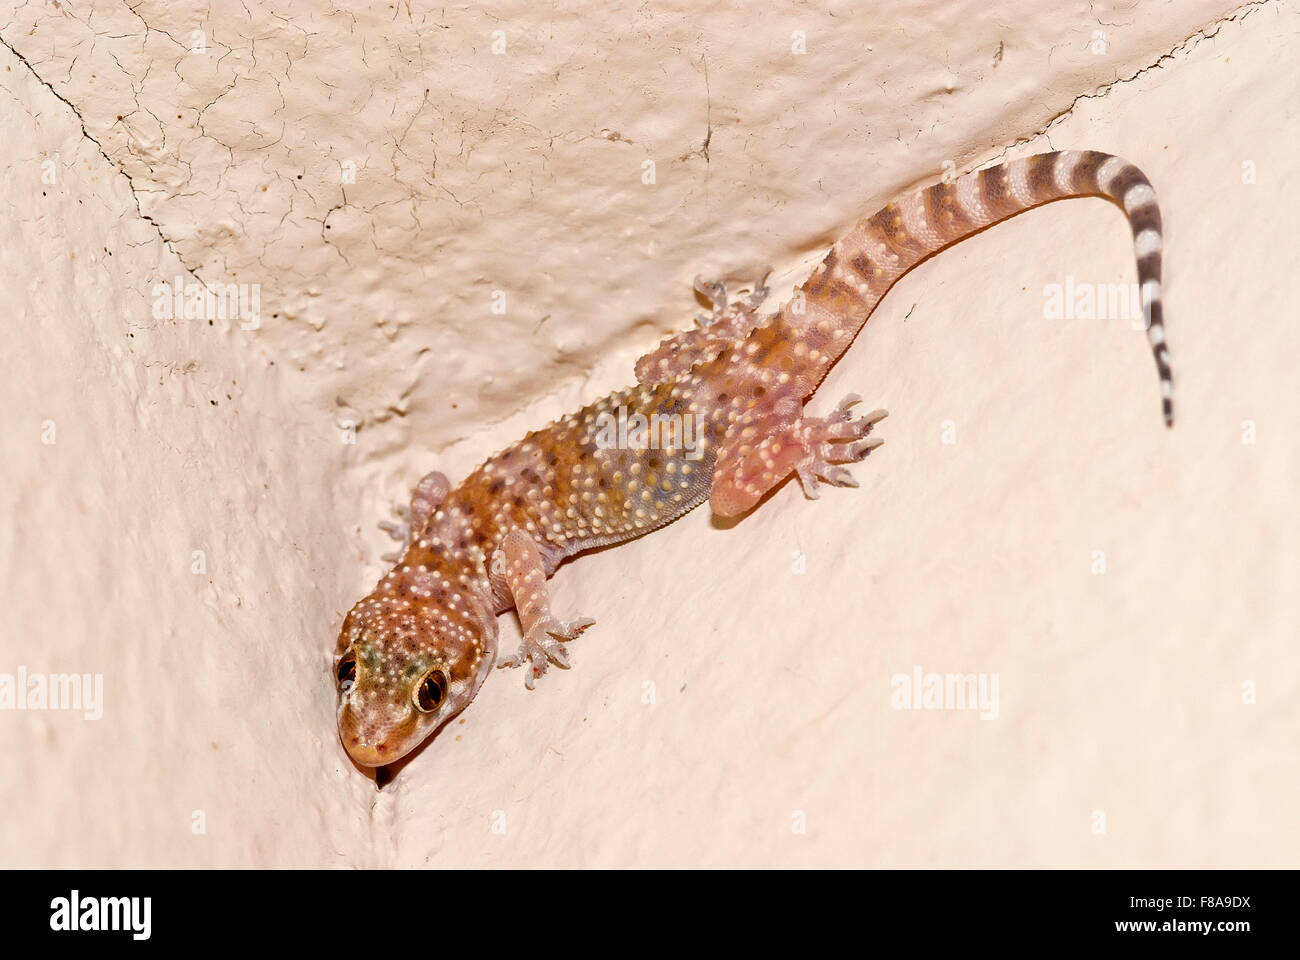 House gecko on a wall - Stock Image